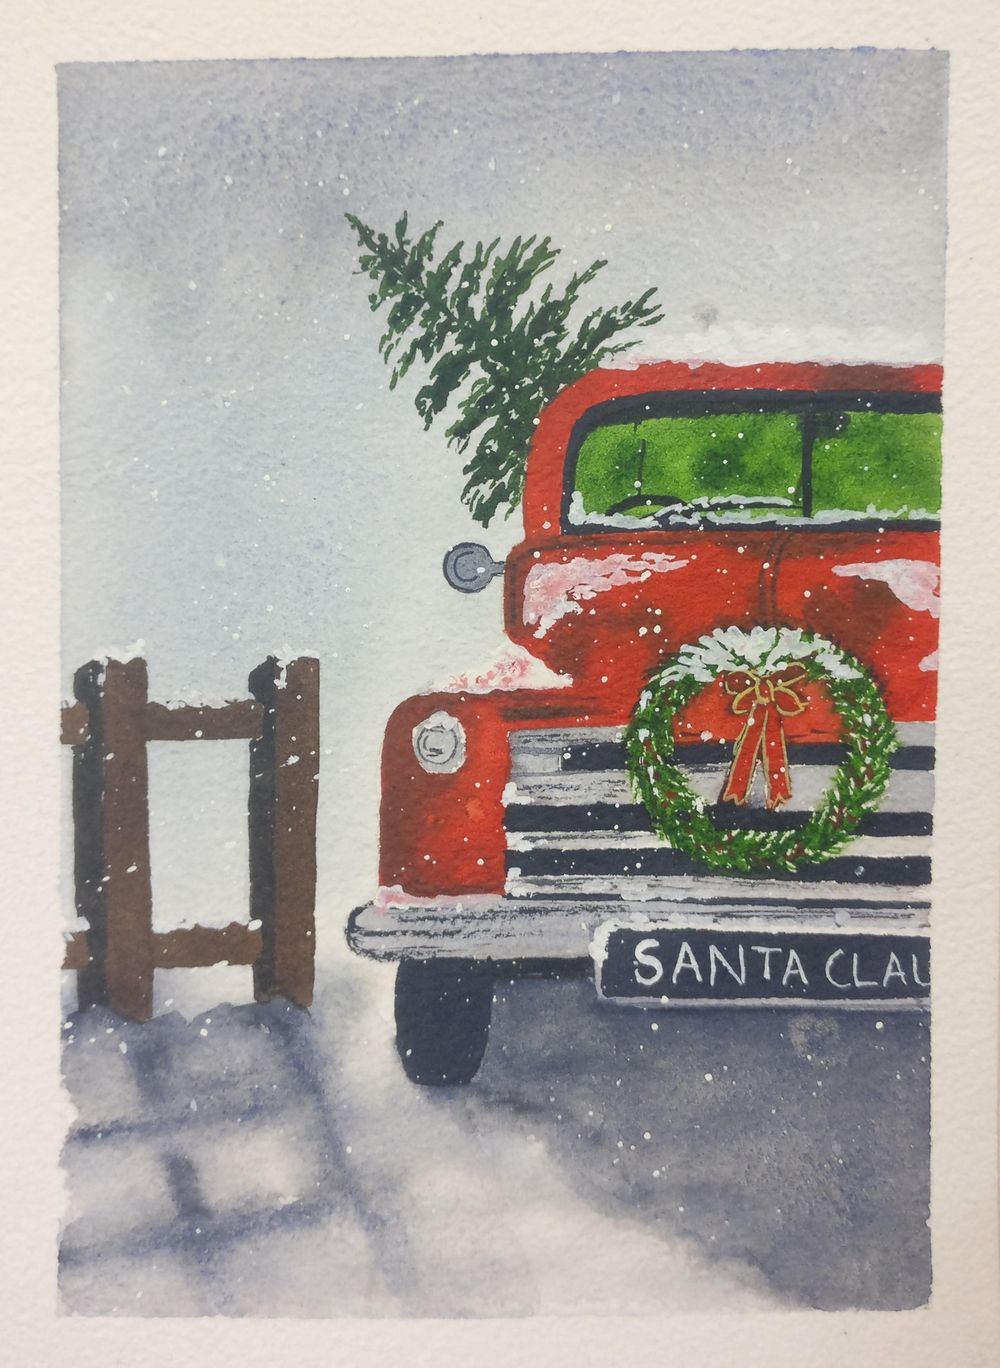 Christmas with watercolors - image 16 - student project